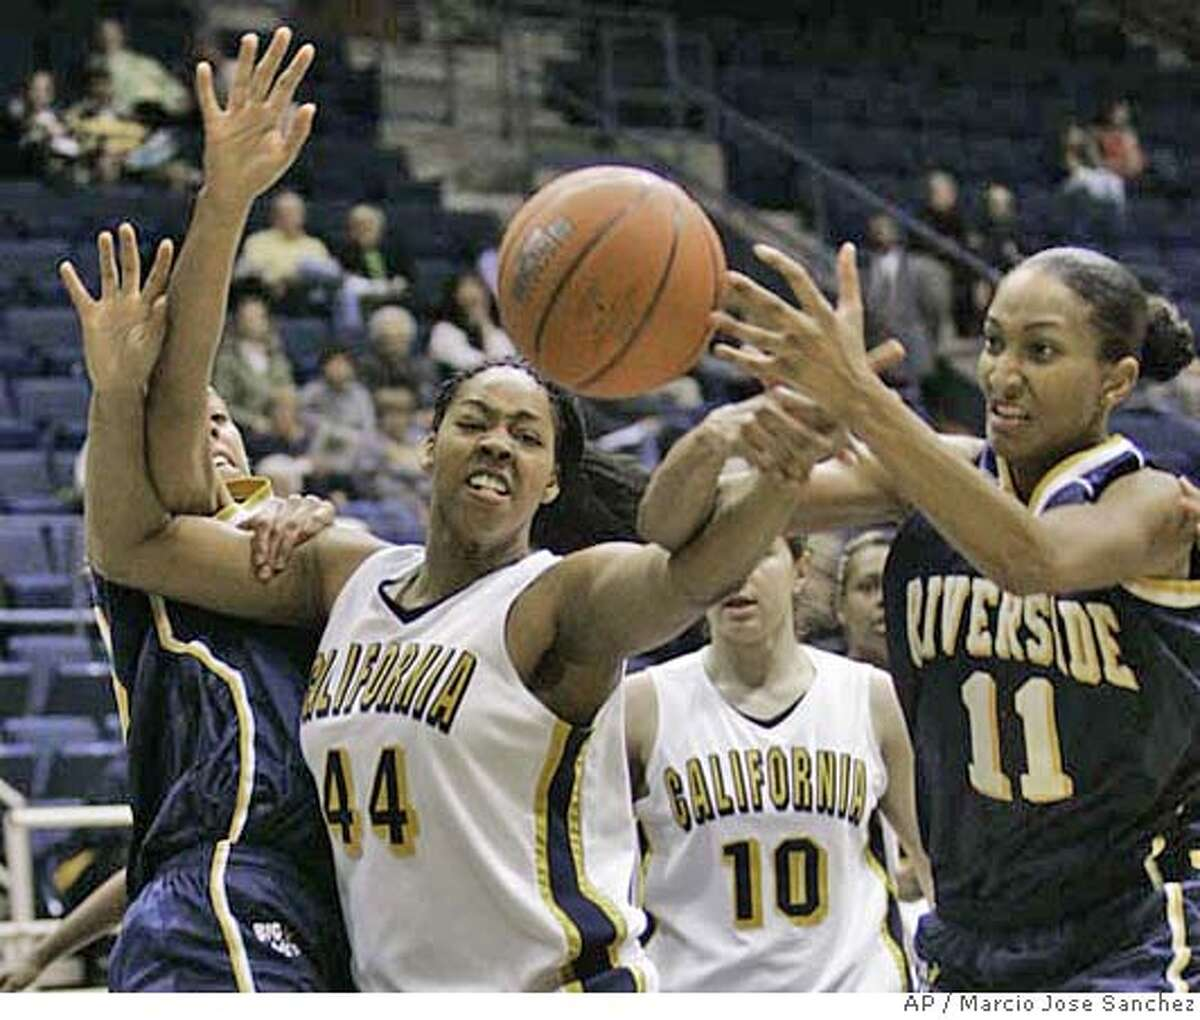 California's Ashley Walker, center, fights for a rebound against UC Riverside's Kemie Nkele, left, and Roney Friend in the first half of a basketball game in Berkeley, Calif., Wednesday, Jan. 31, 2007.(AP Photo/Marcio Jose Sanchez)